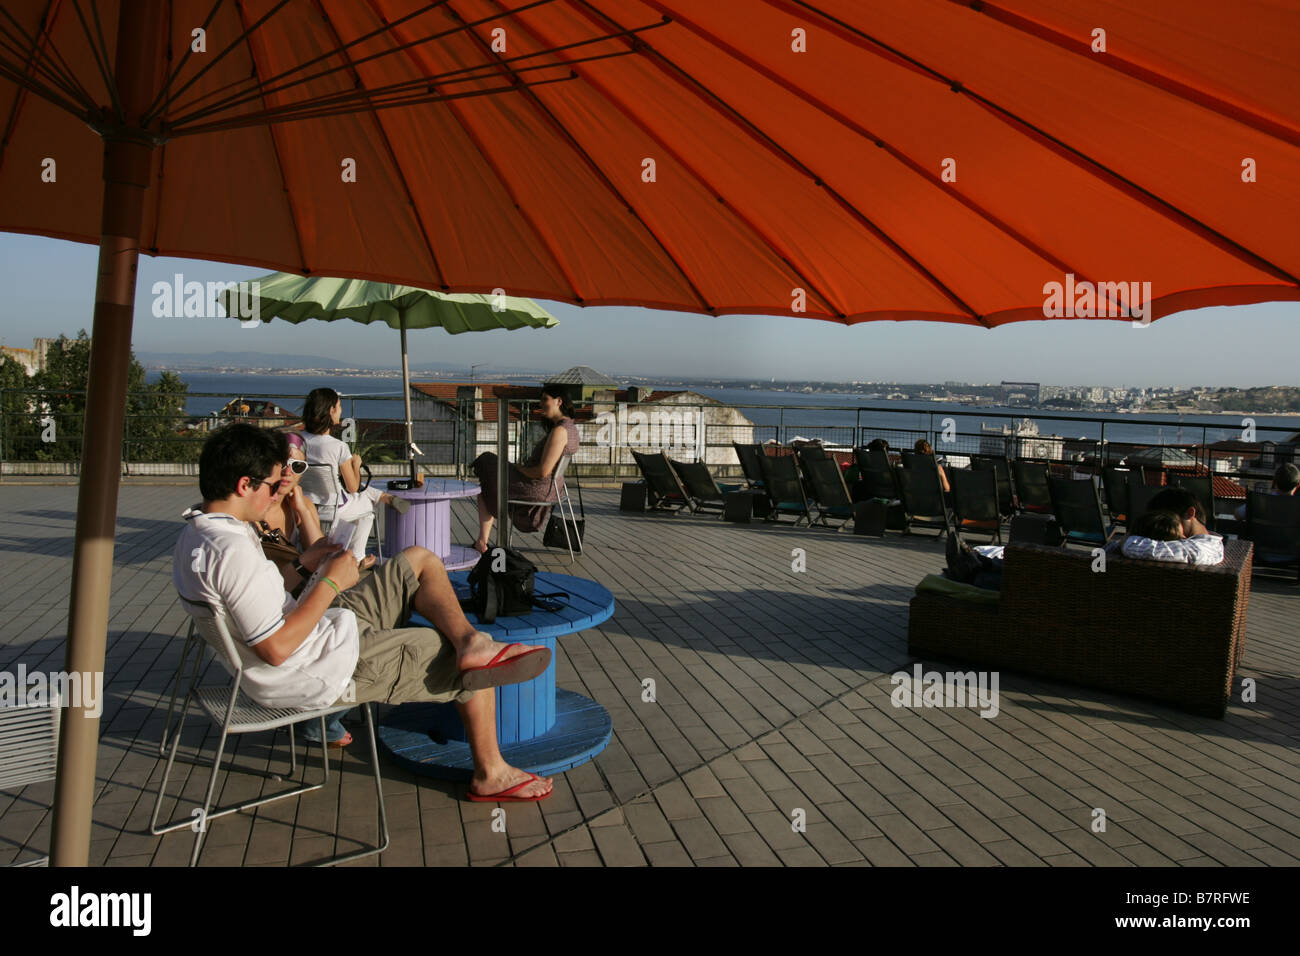 Cafe bar called The Terrace (O Terraço) boasting one of Lisbon's best views. - Stock Image